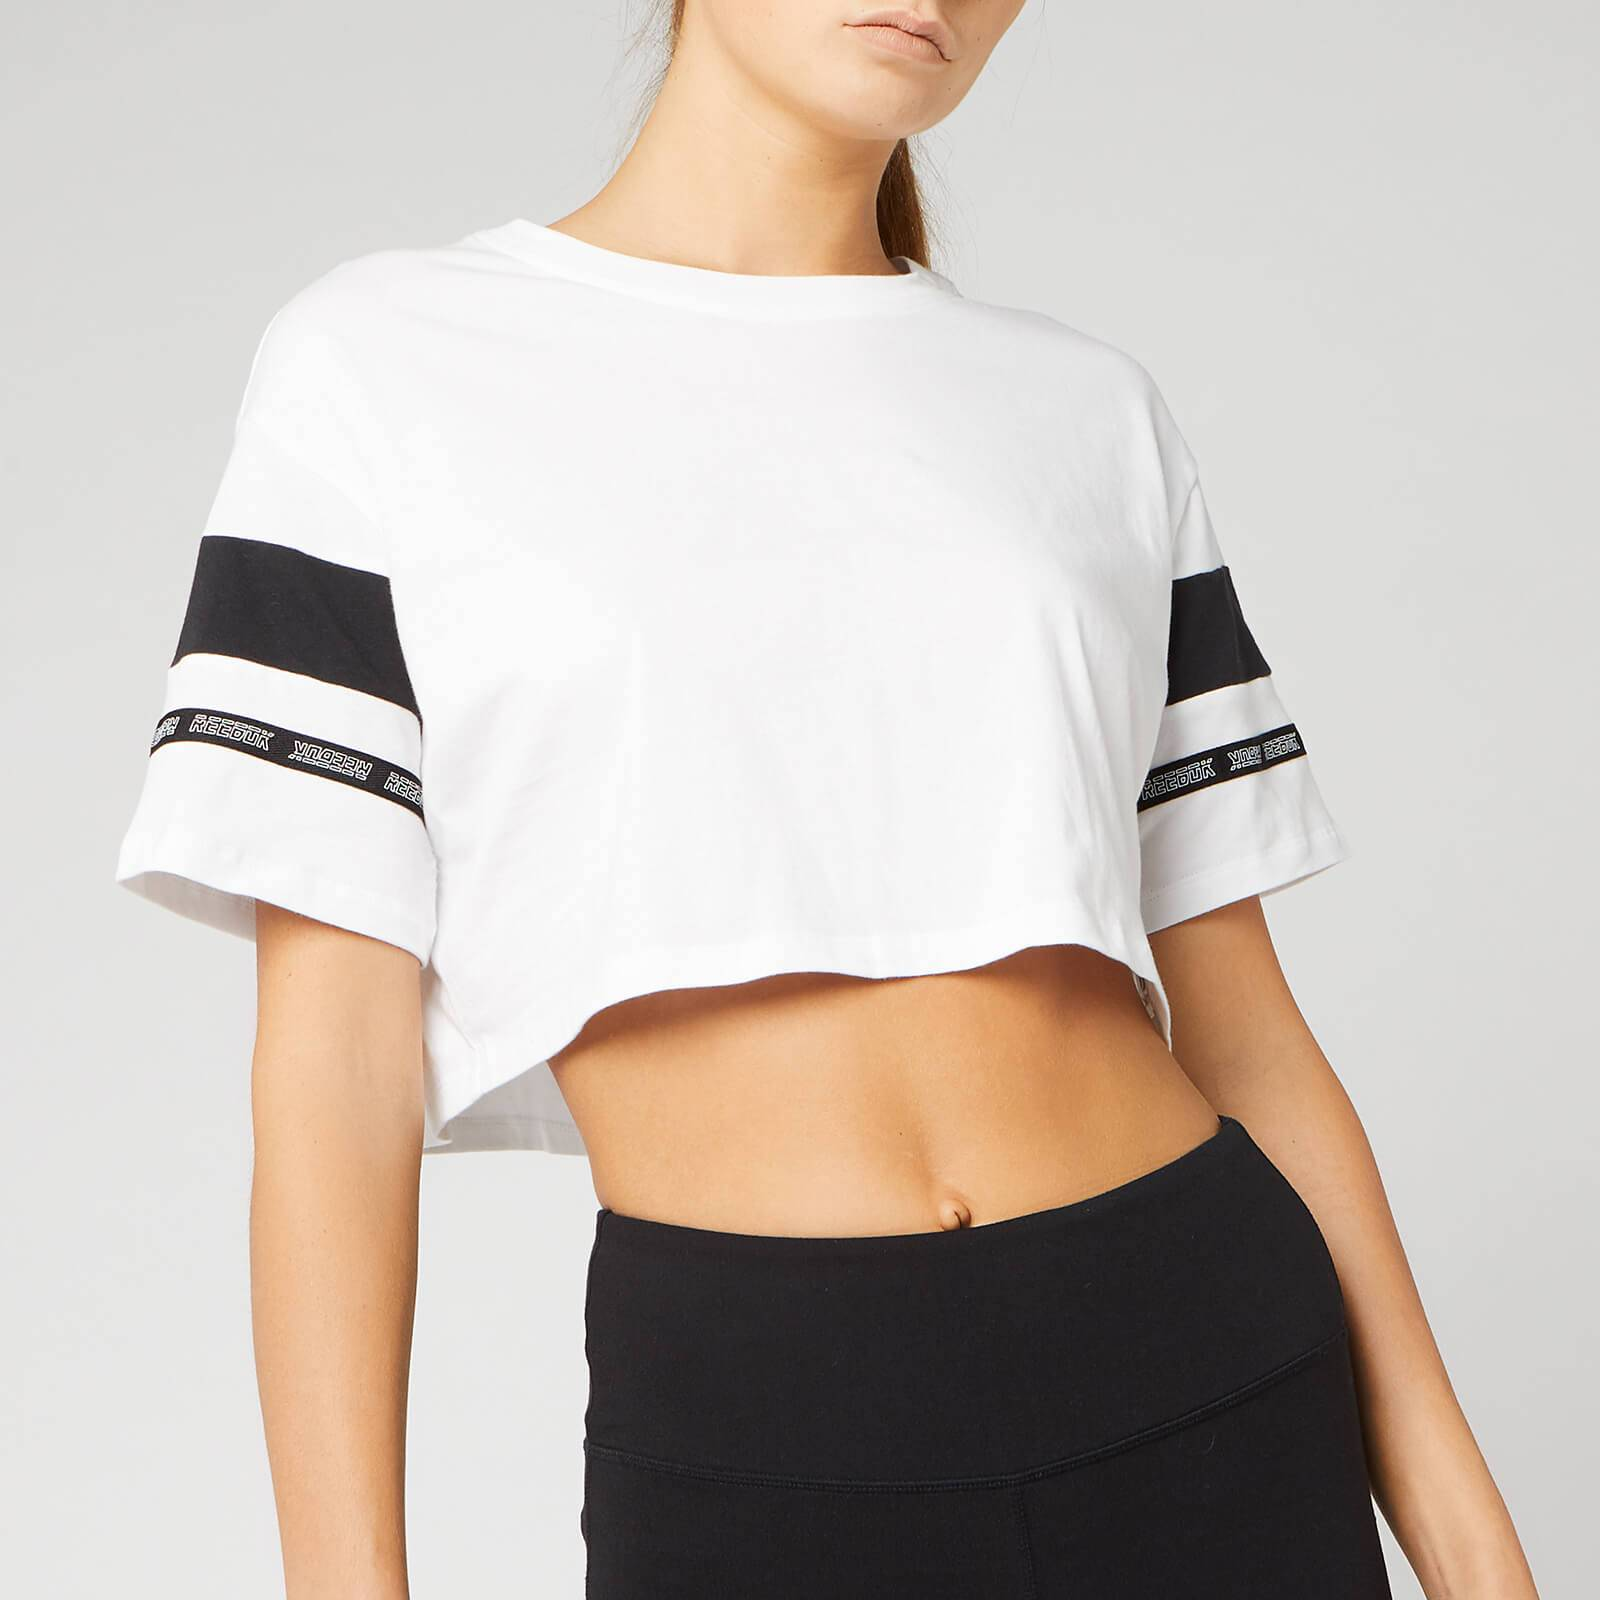 Reebok Women's WOR MYT Solid Cropped Short Sleeve T-Shirt - White - XS - White